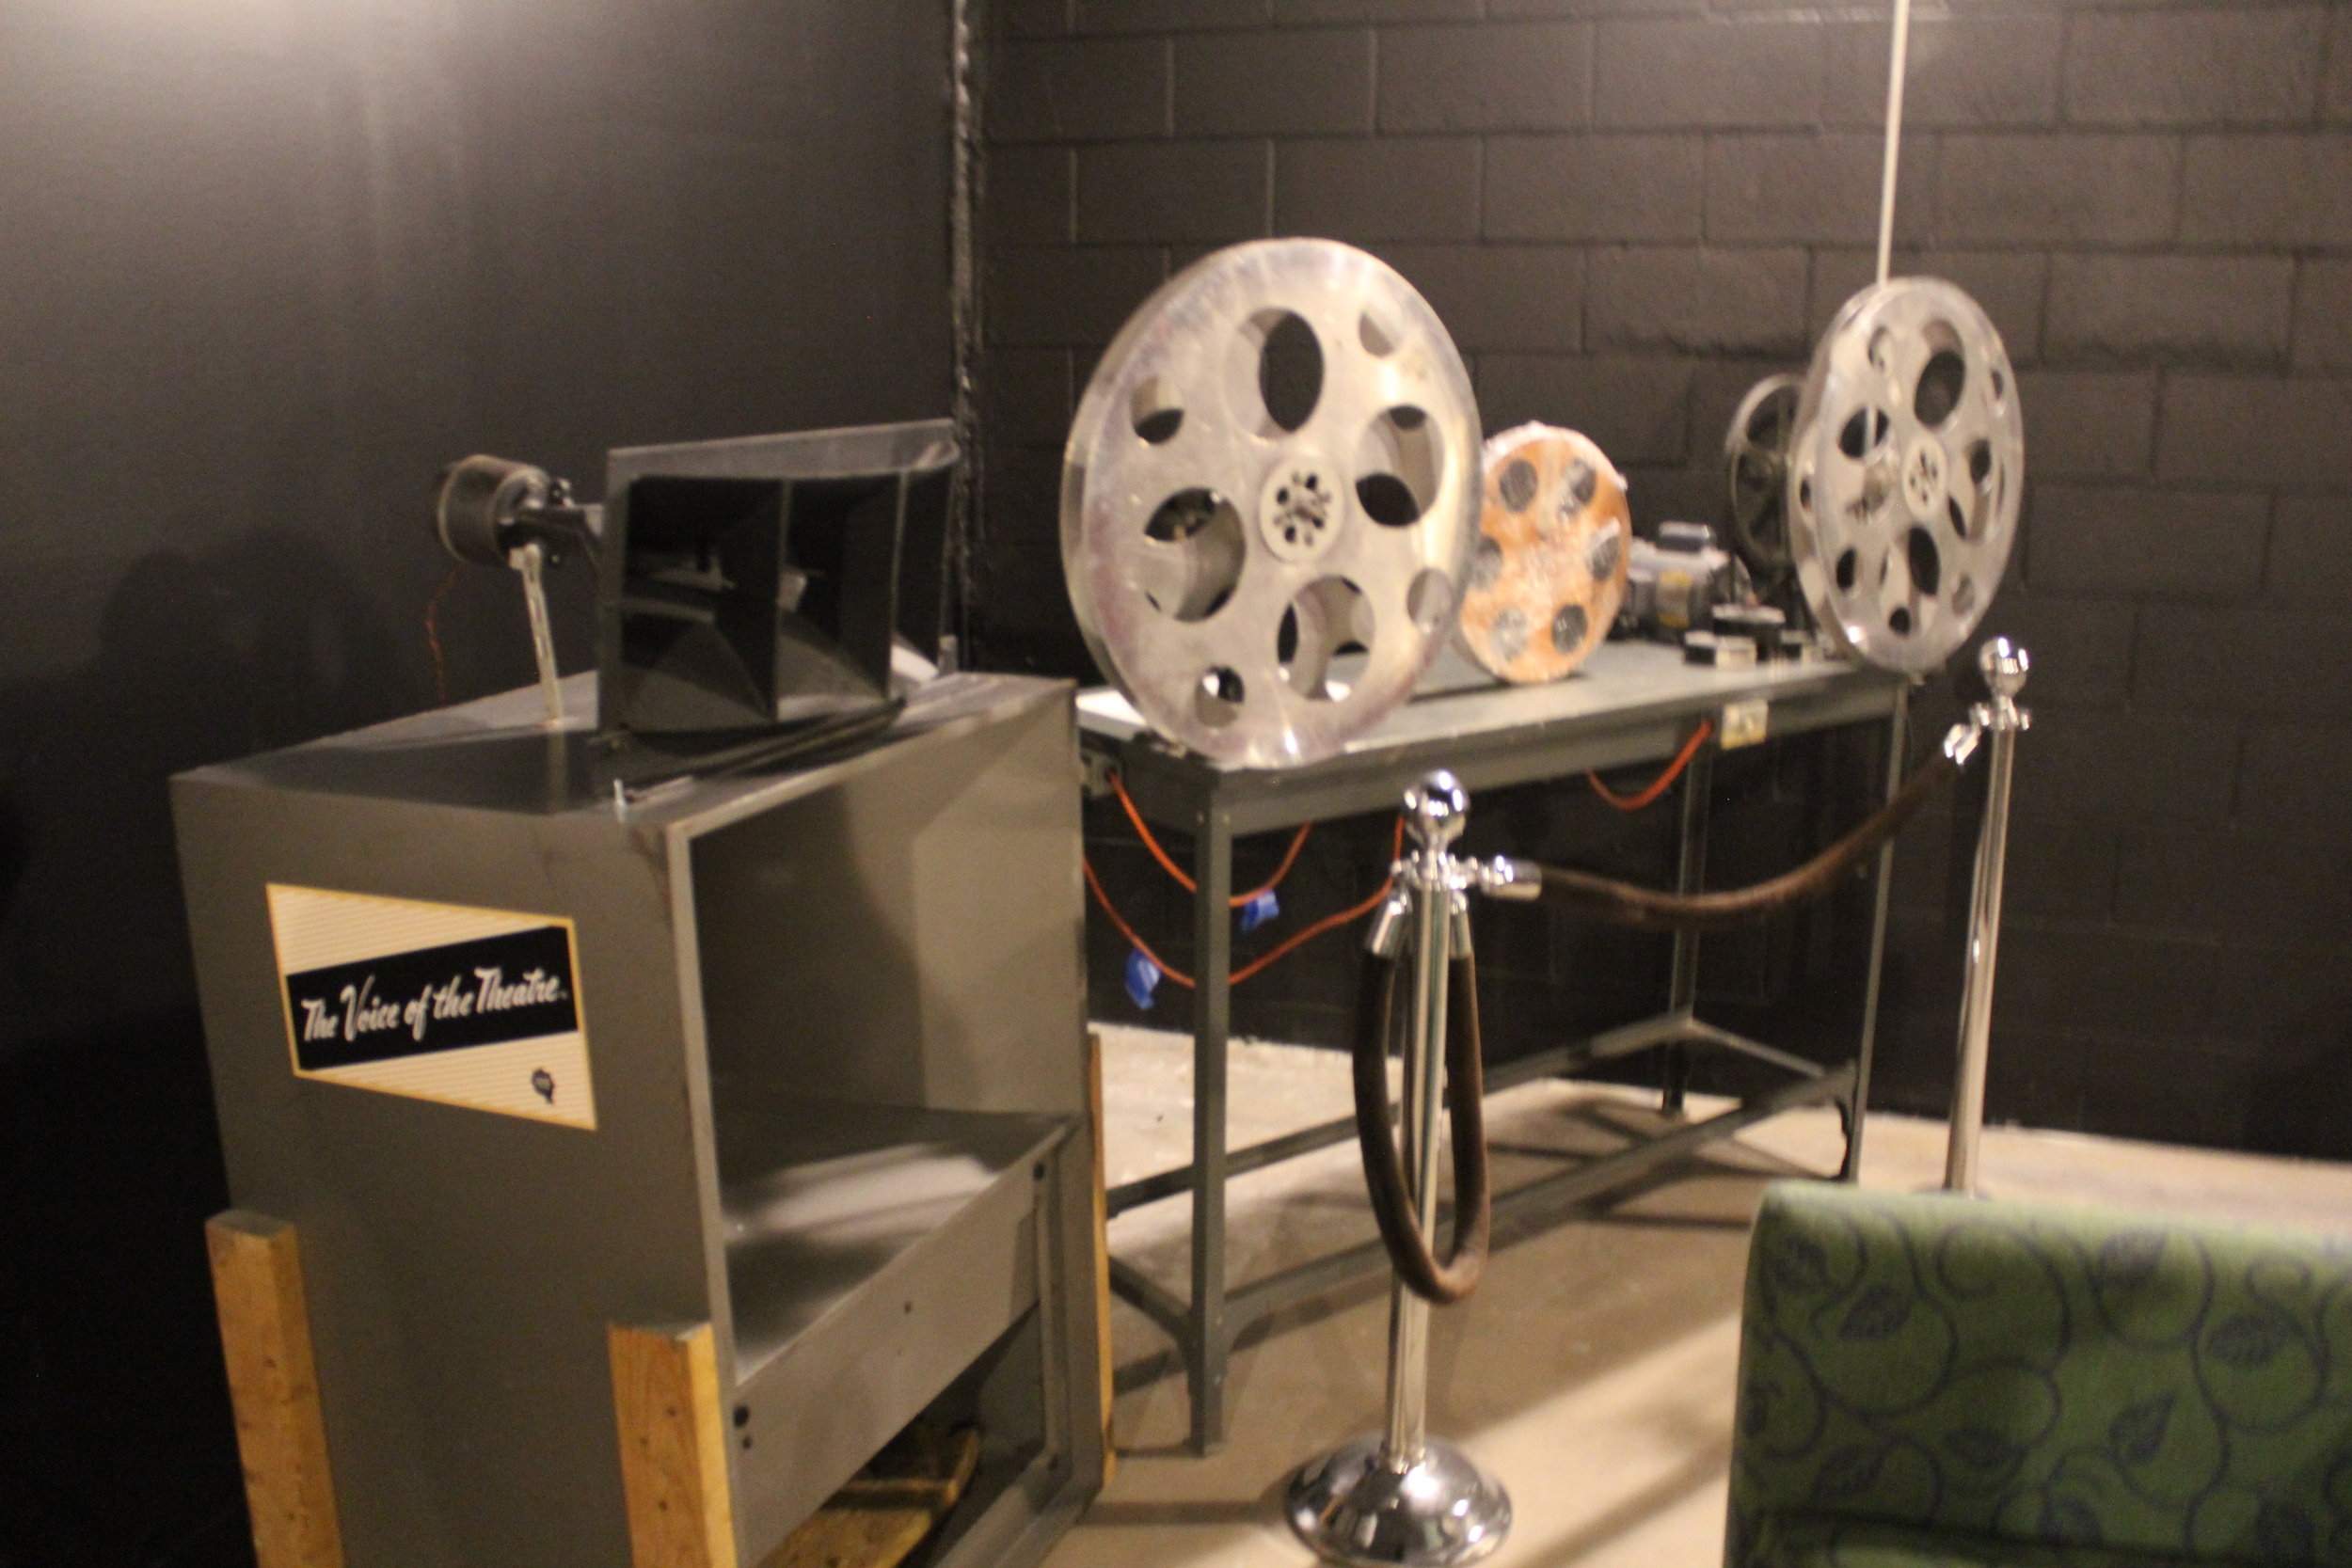 Old editing equipment and movie reels in the corner of screen 2